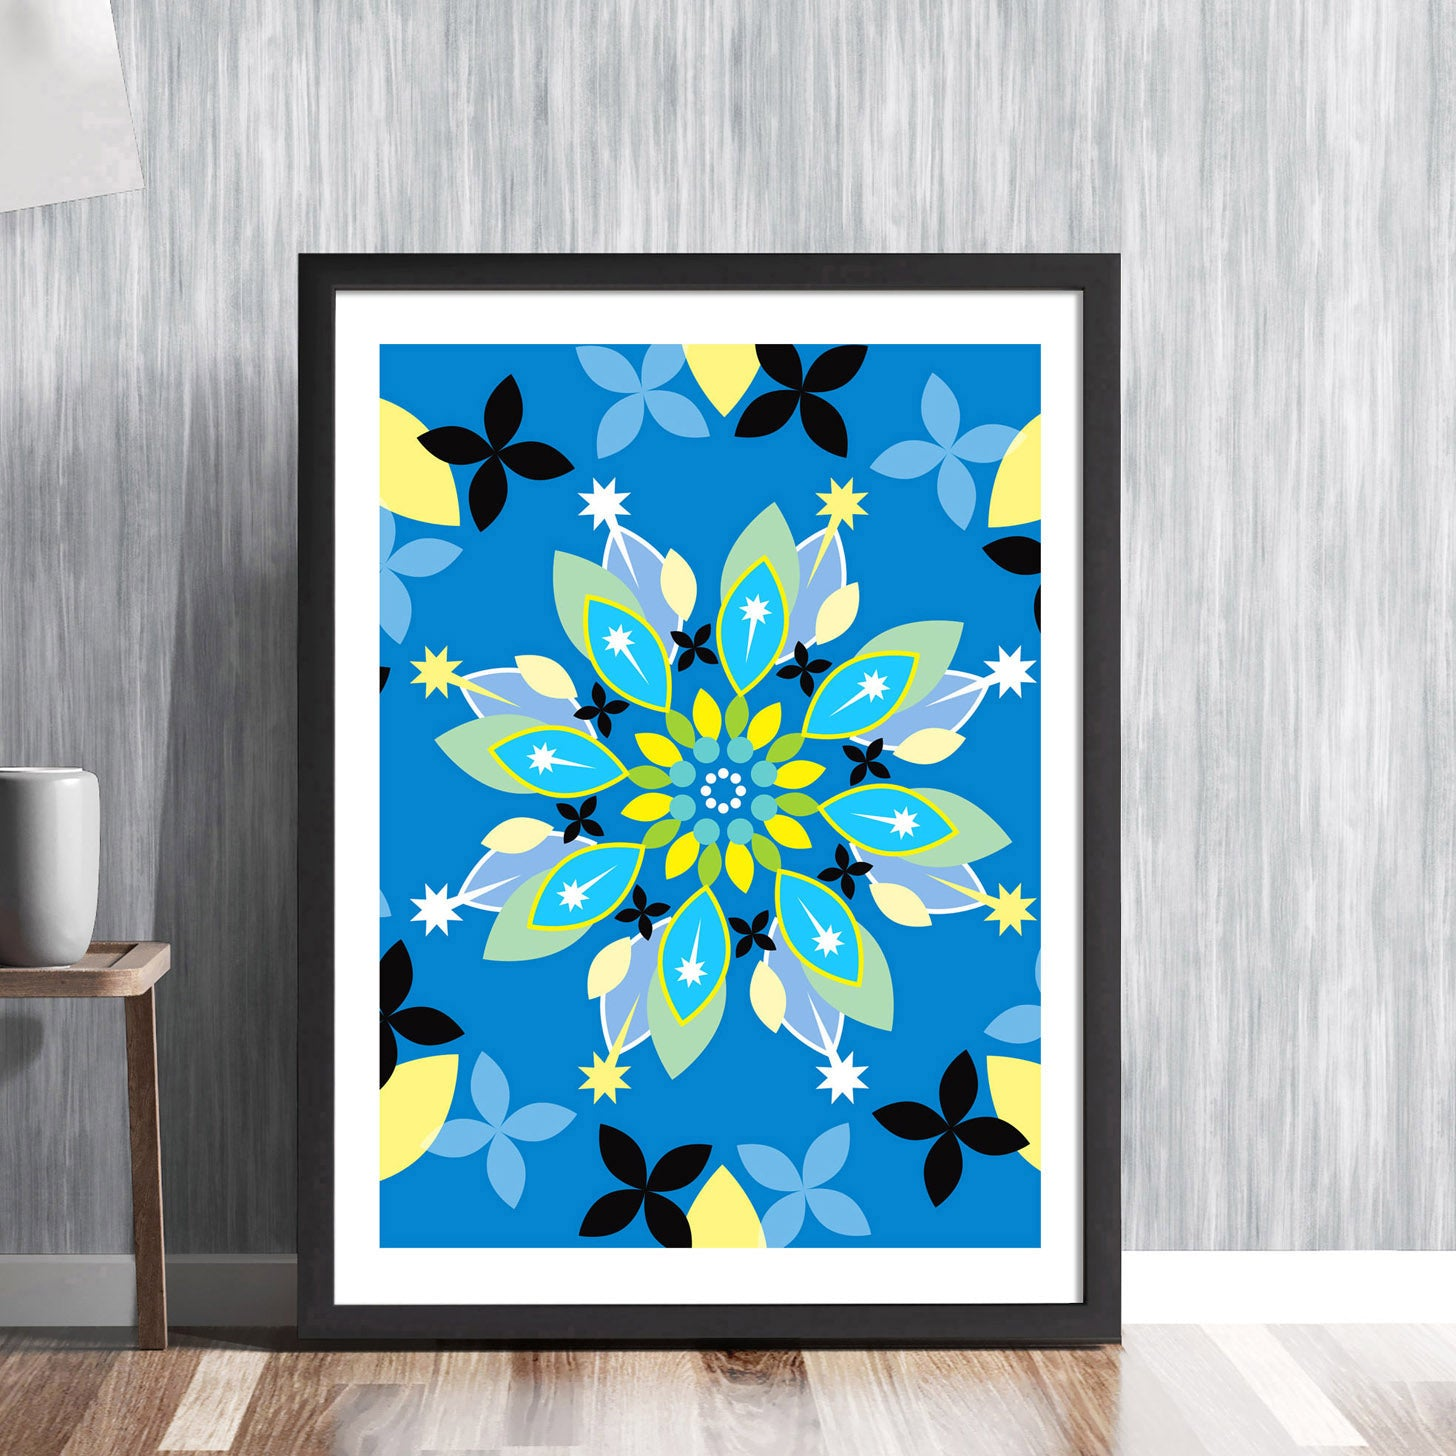 Floral pattern design - intricate traditional vintage folk style in modern botanical graphic gallery art print - 'Unframed'